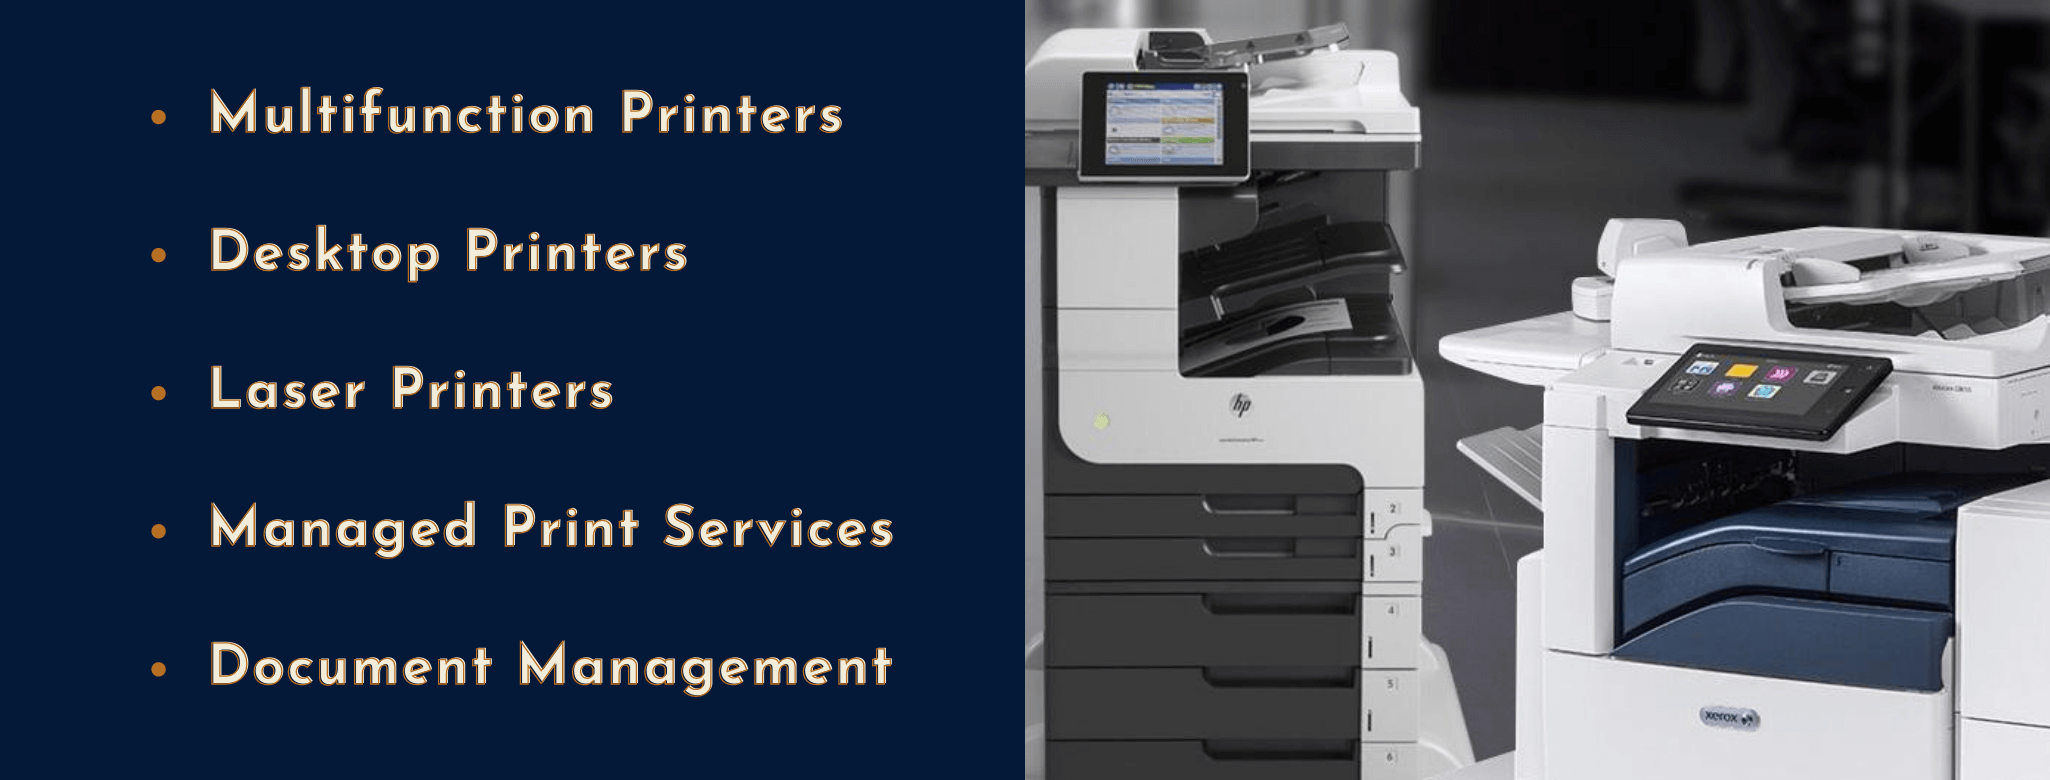 Services to help your office productivity include multifunction printers and print management softwares